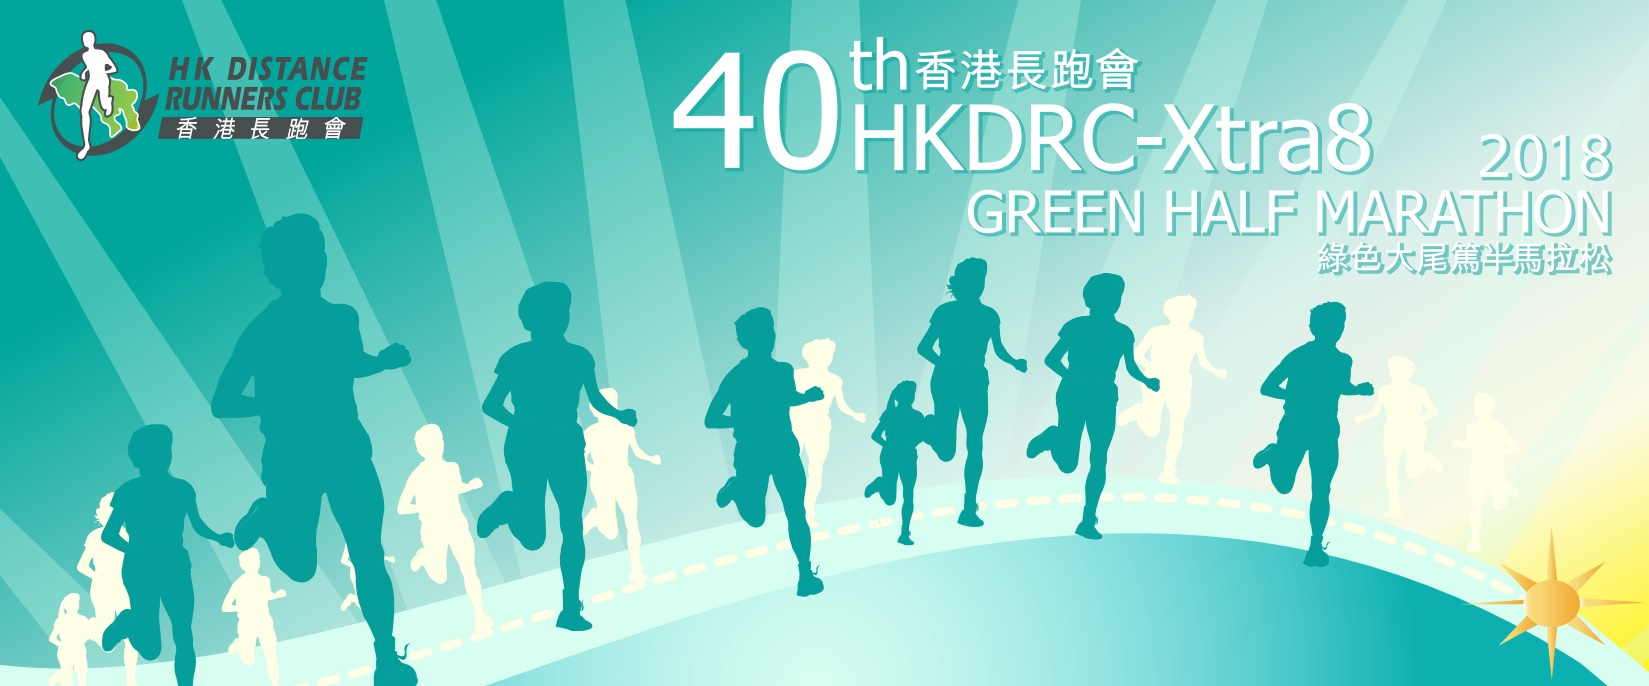 HKDRC – Xtra8 40th Green Half Marathon 2018